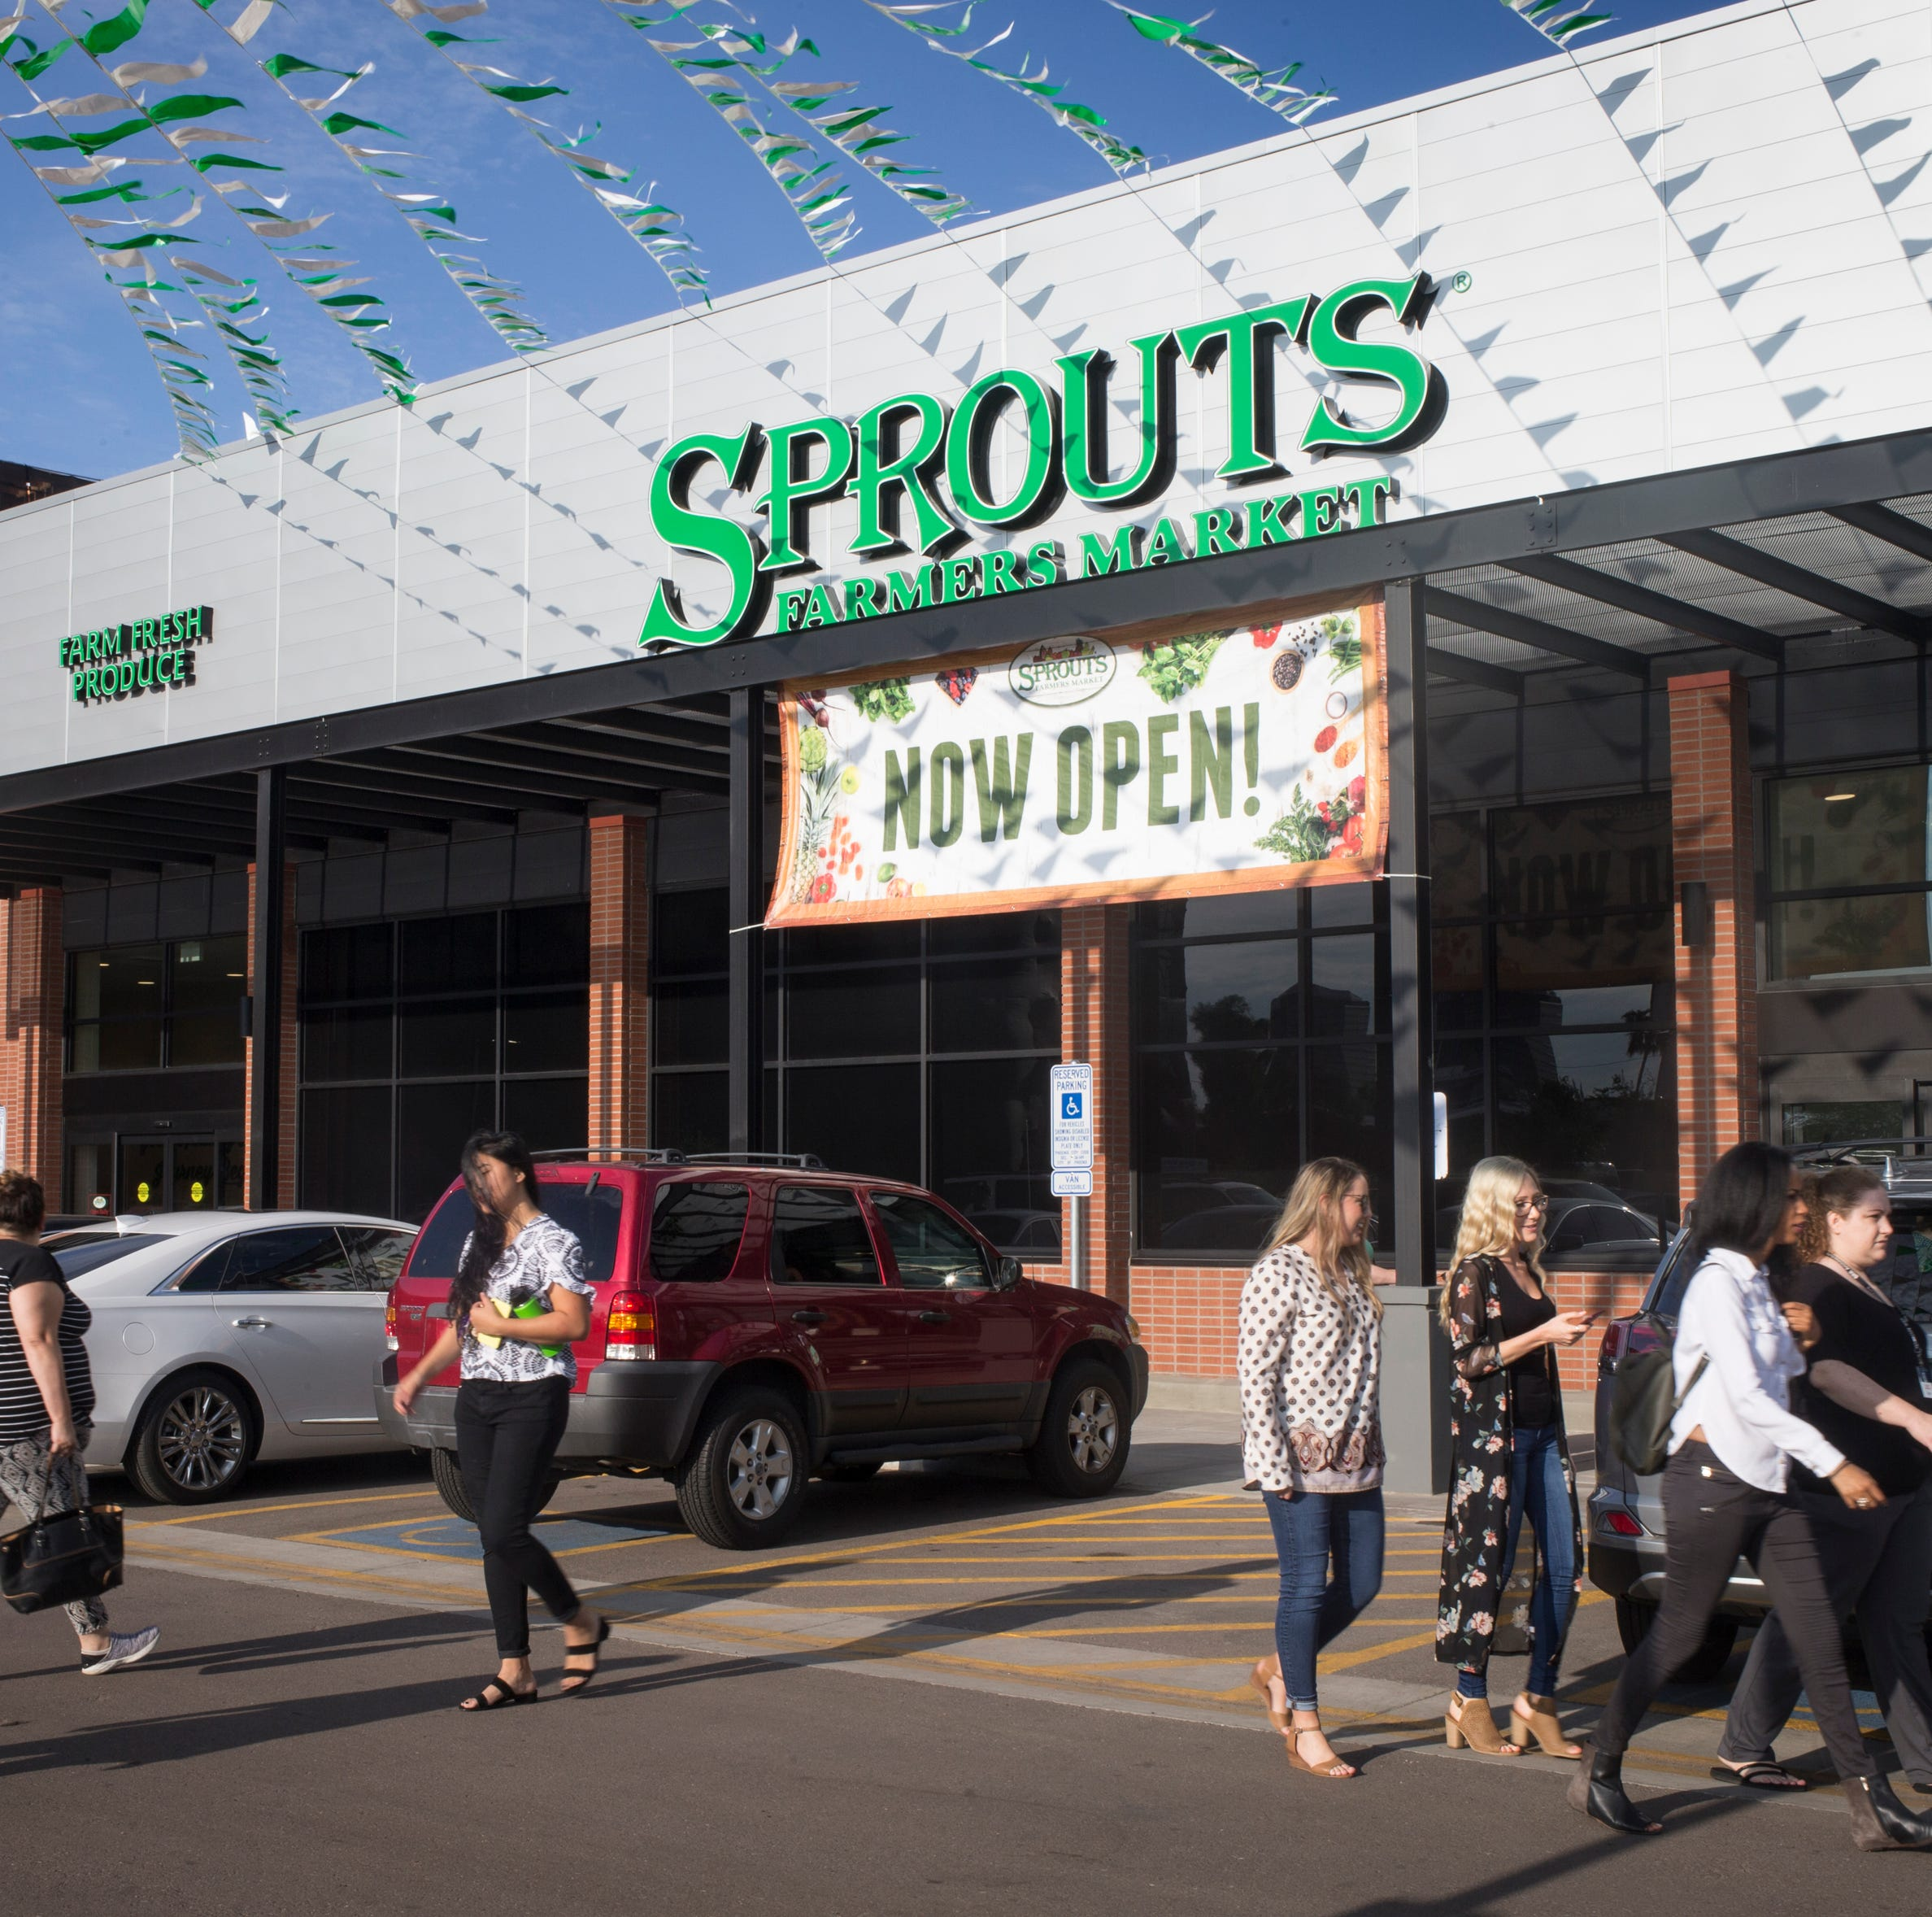 New Sprouts grocery store coming to Laveen in upcoming expansion